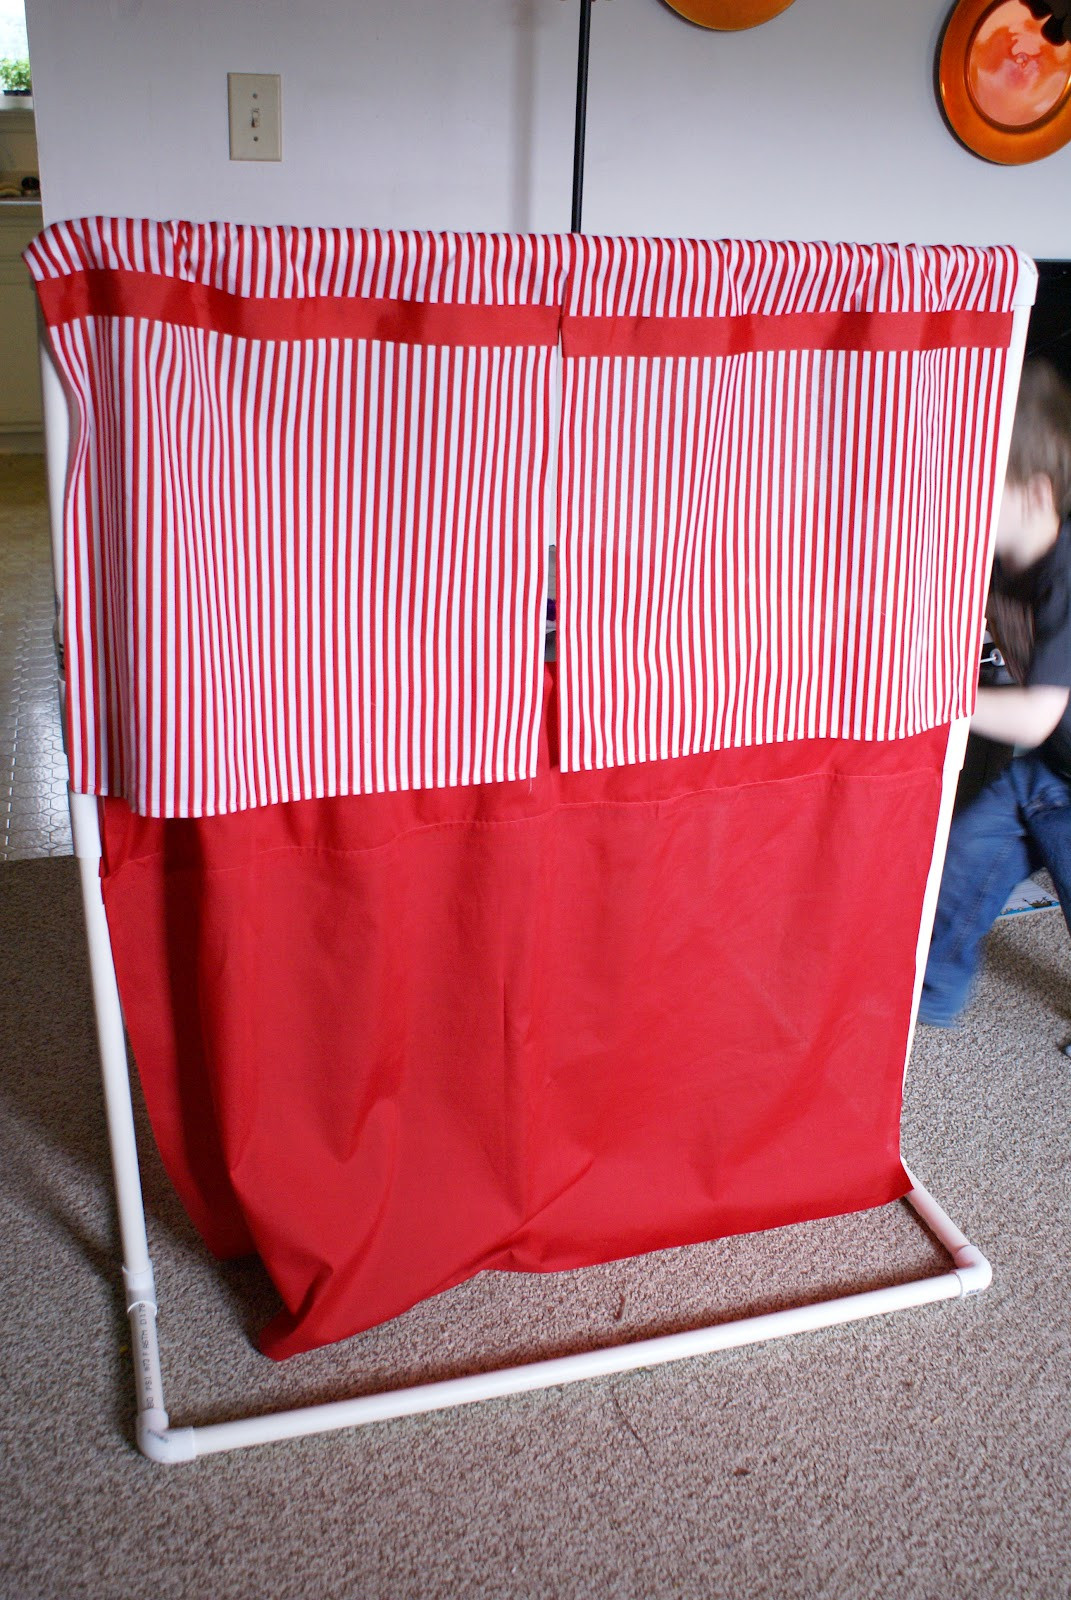 Best ideas about DIY Puppet Theater . Save or Pin Sugar Crumbs Pinterest Pick Puppet Theater Now.